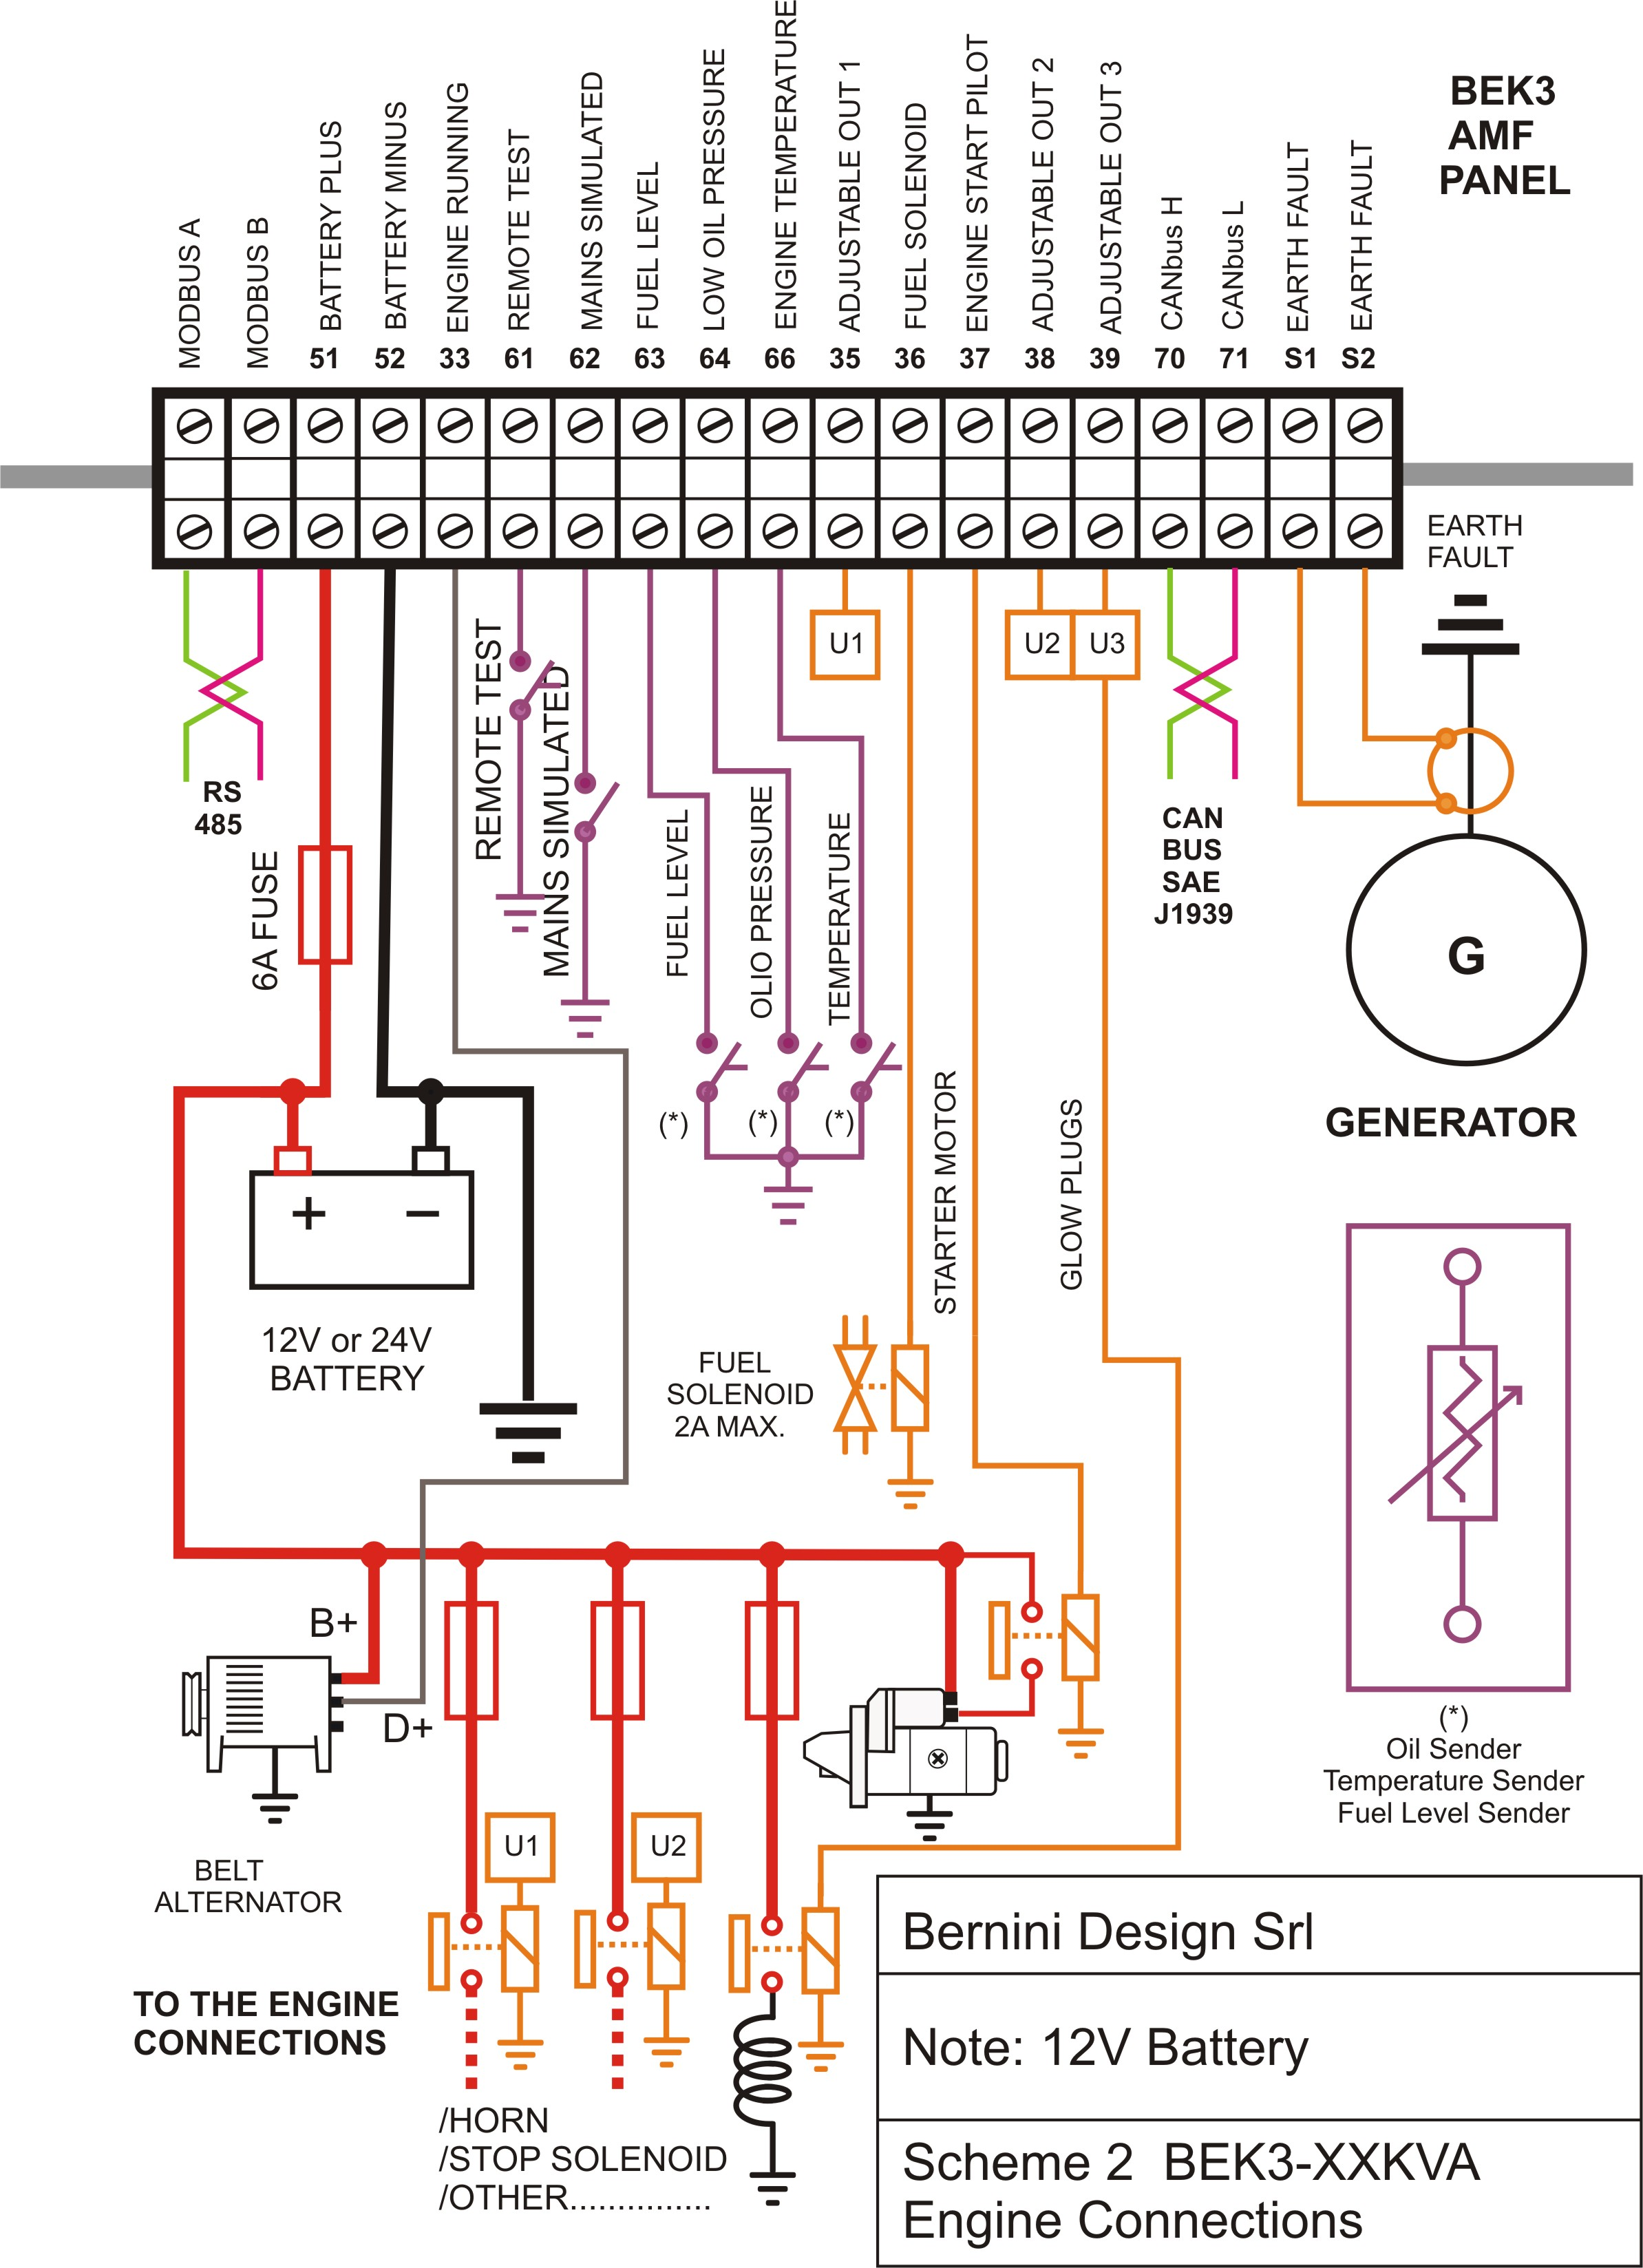 Generator Transfer Panel Wiring Diagram Library Relay Circuit 12v Ac Voltage Get Free Image About Arc Switch